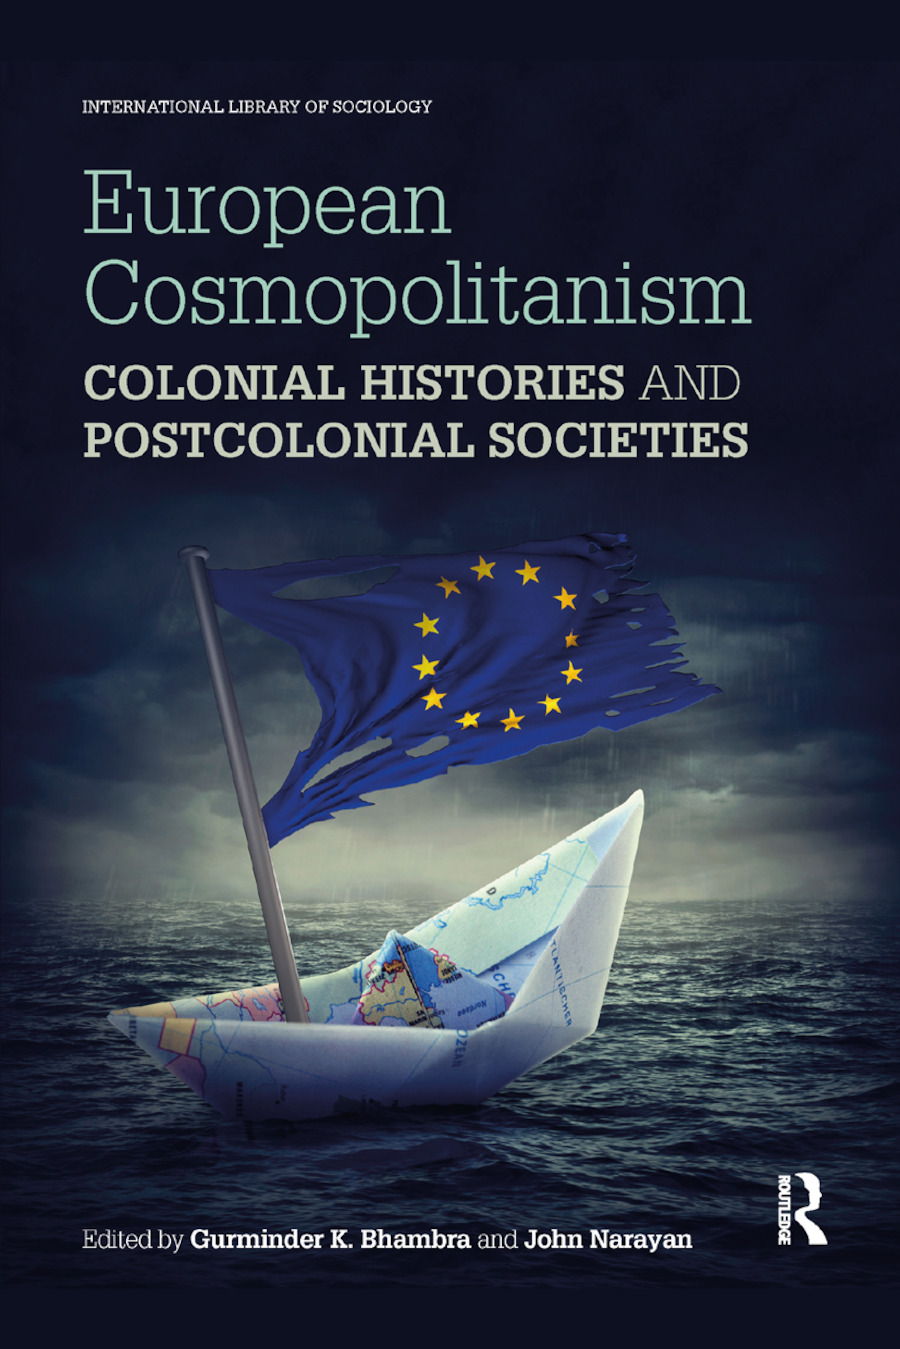 European Cosmopolitanism: Colonial Histories and Postcolonial Societies book cover